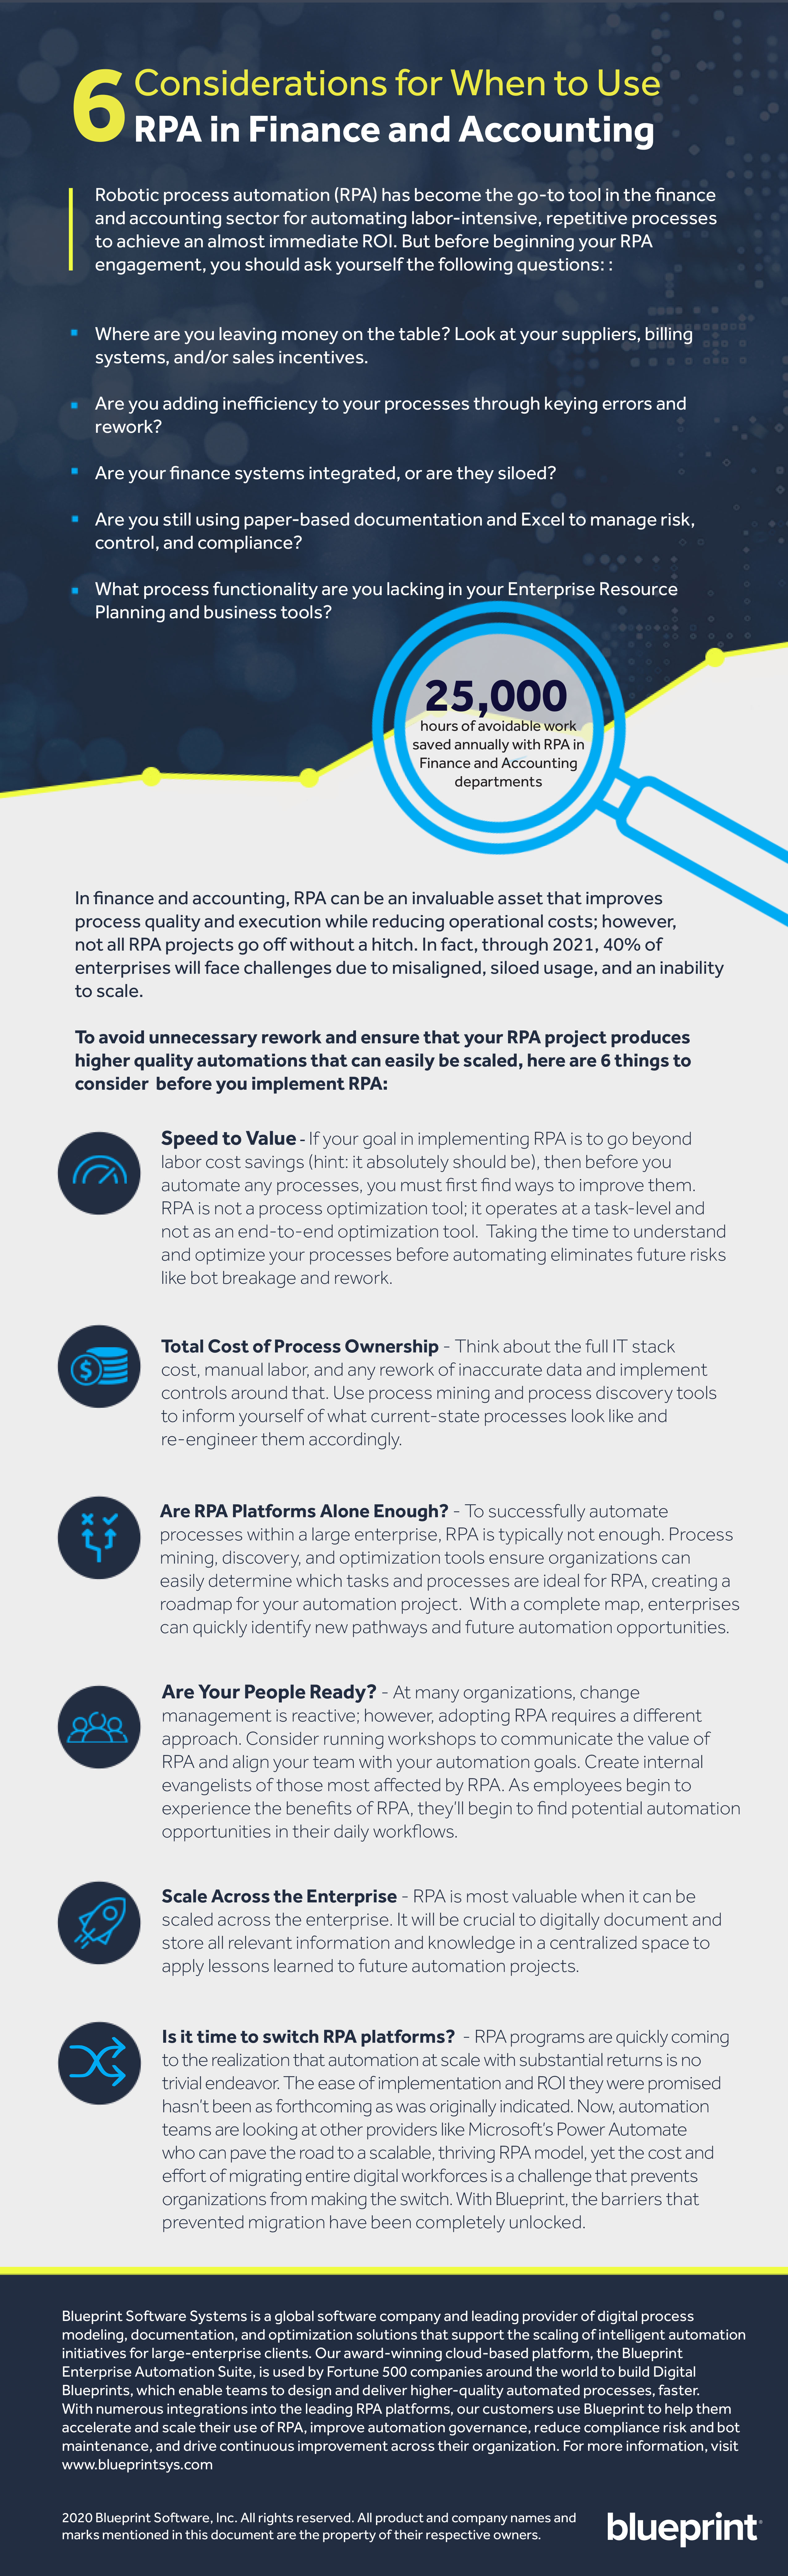 Infographic-RPA in Finance and Accounting - Updated V2 June 2021